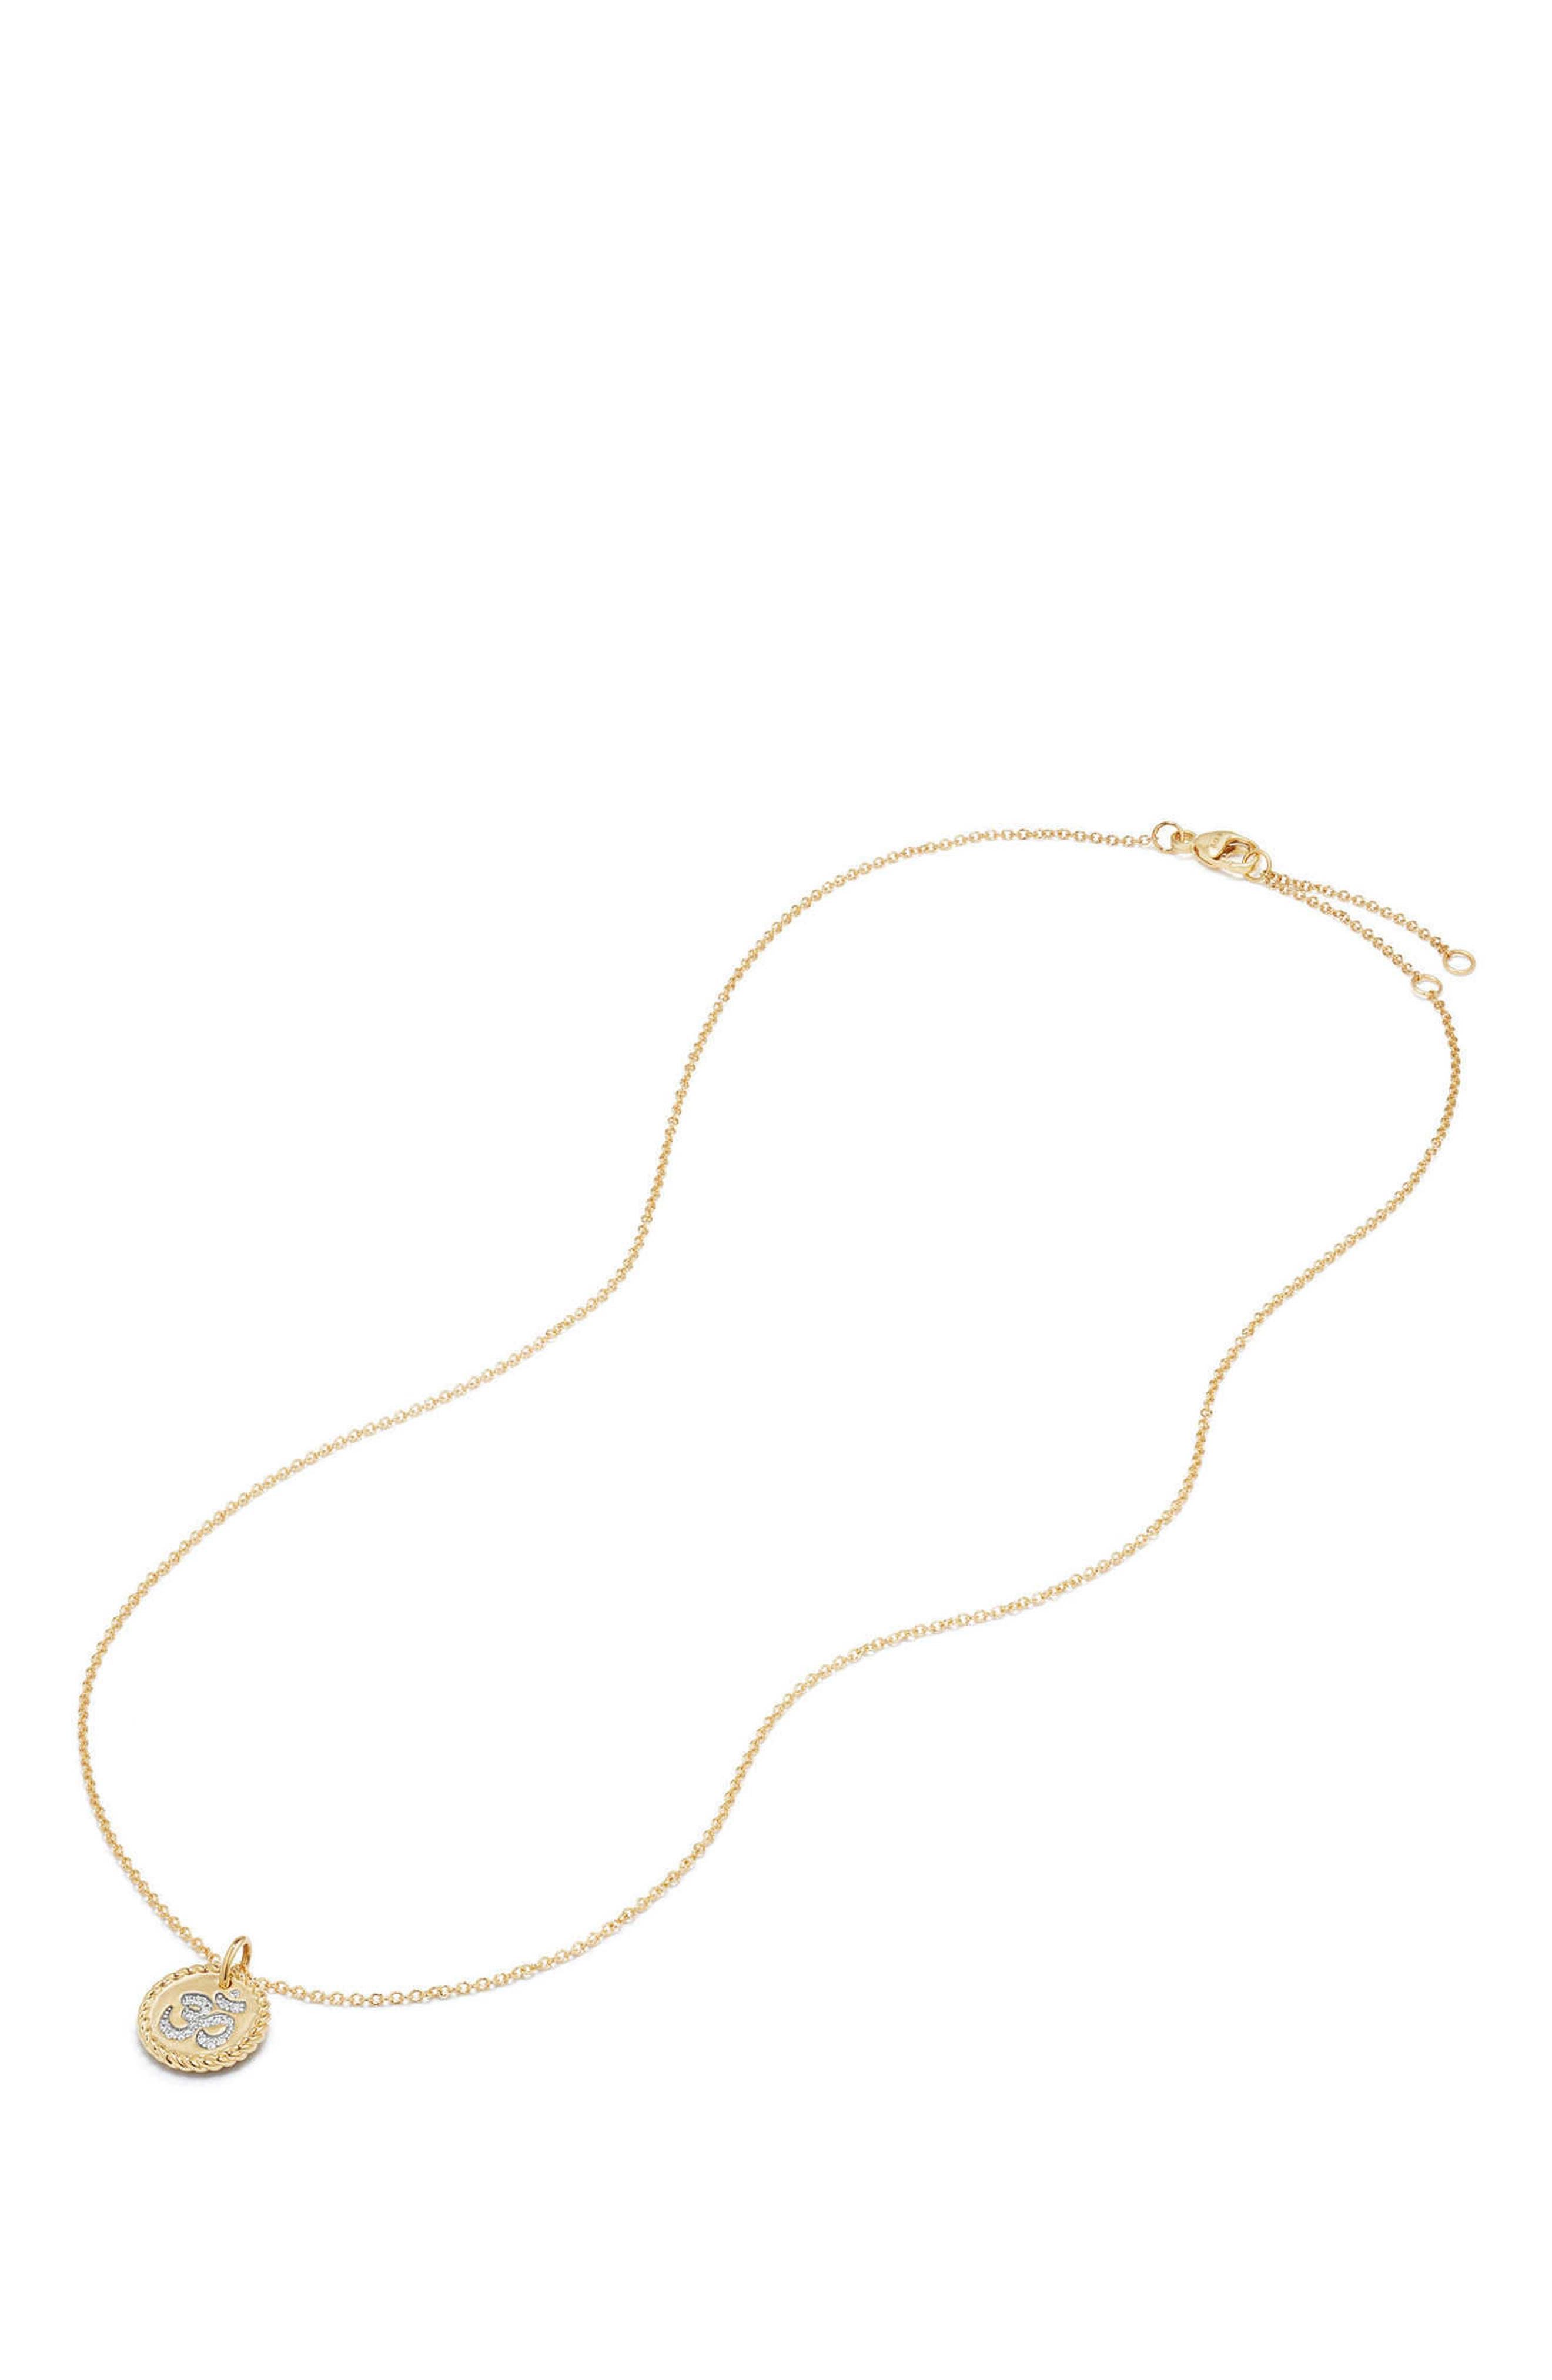 Cable Collectibles Om Necklace with Diamonds in 18K Gold,                             Alternate thumbnail 2, color,                             GOLD/ DIAMOND